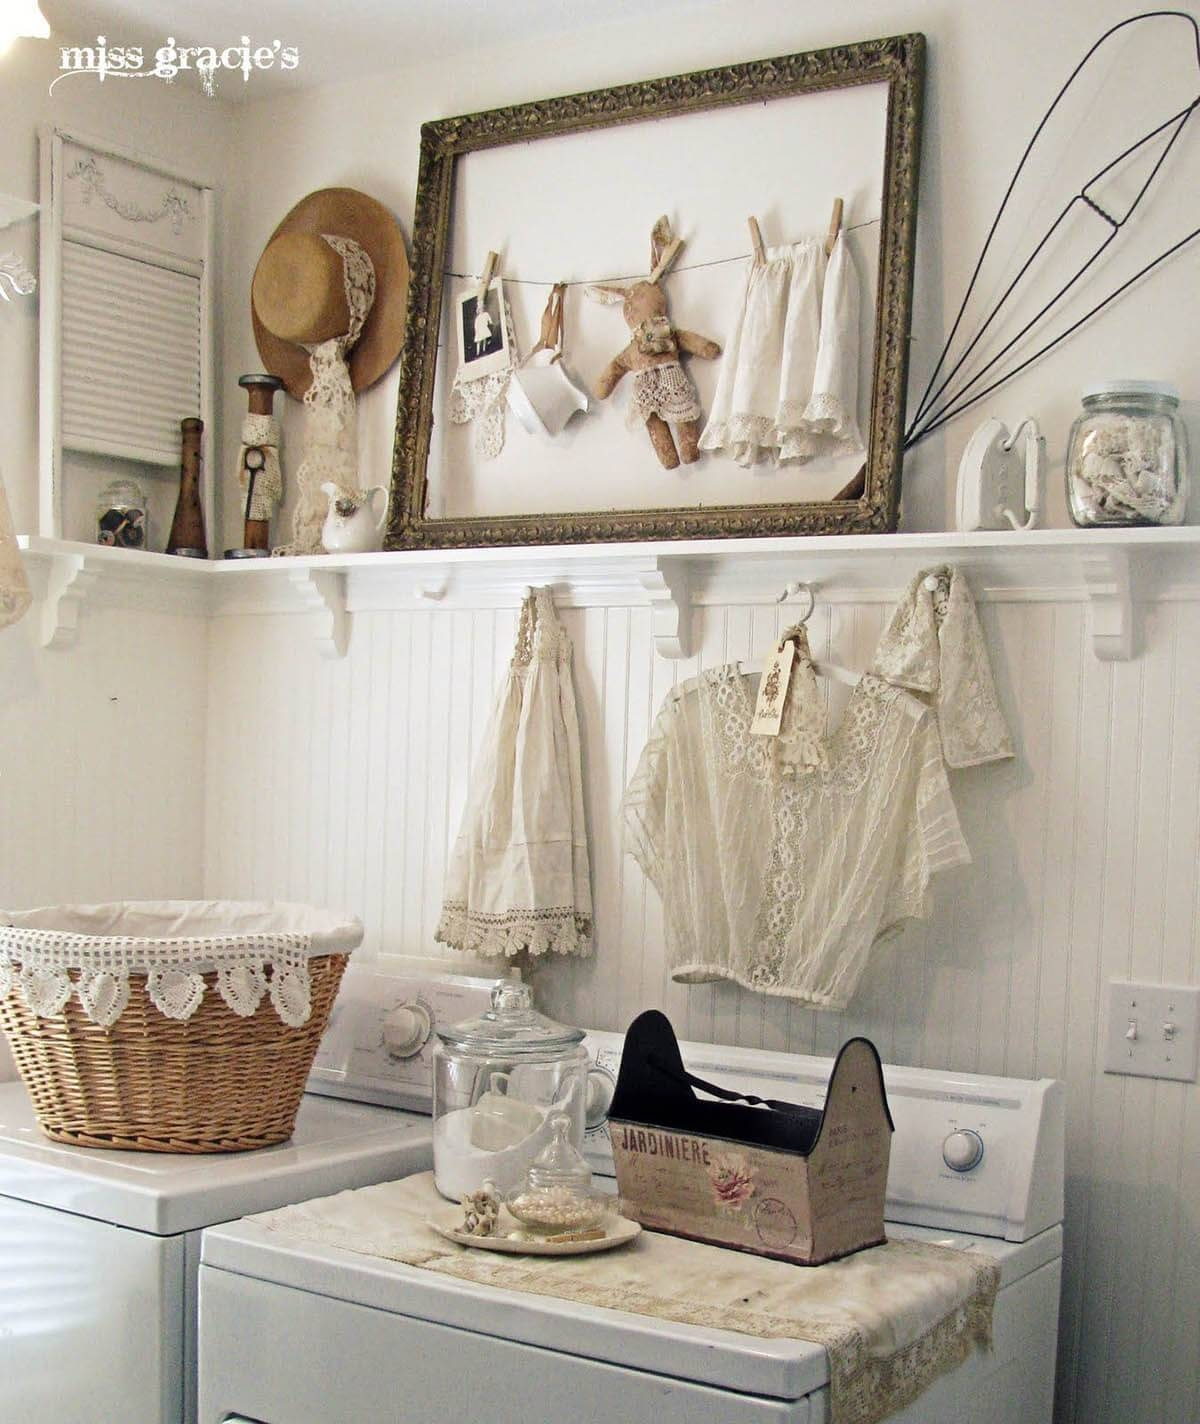 25 Best Vintage Laundry Room Decor Ideas And Designs For 2017 For Recent Laundry Room Wall Art Decors (View 13 of 25)